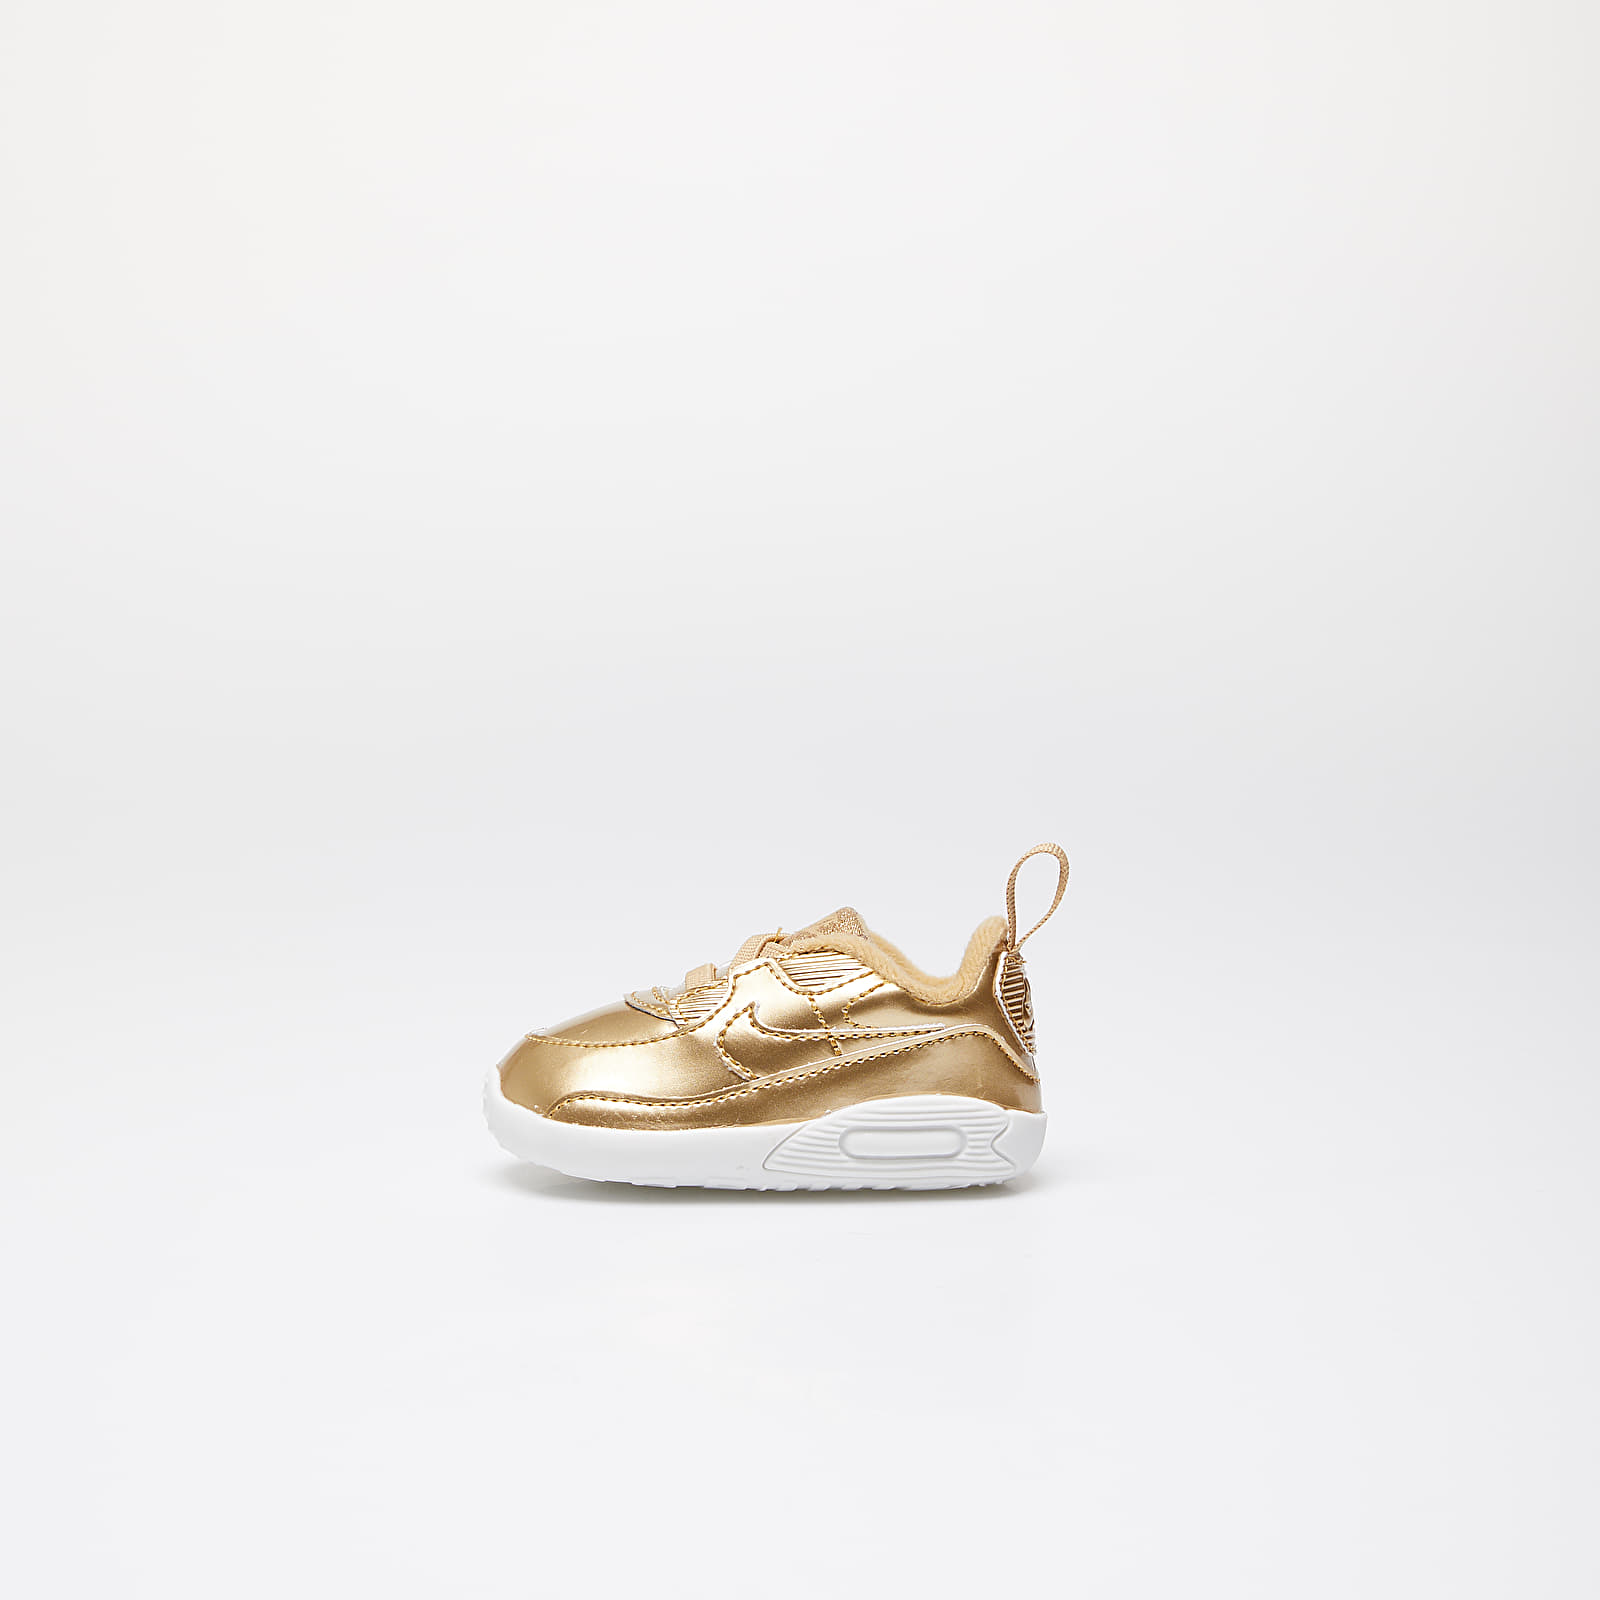 Gyerek Nike Max 90 Crib QS Metallic Gold/ Metallic Gold-Club Gold